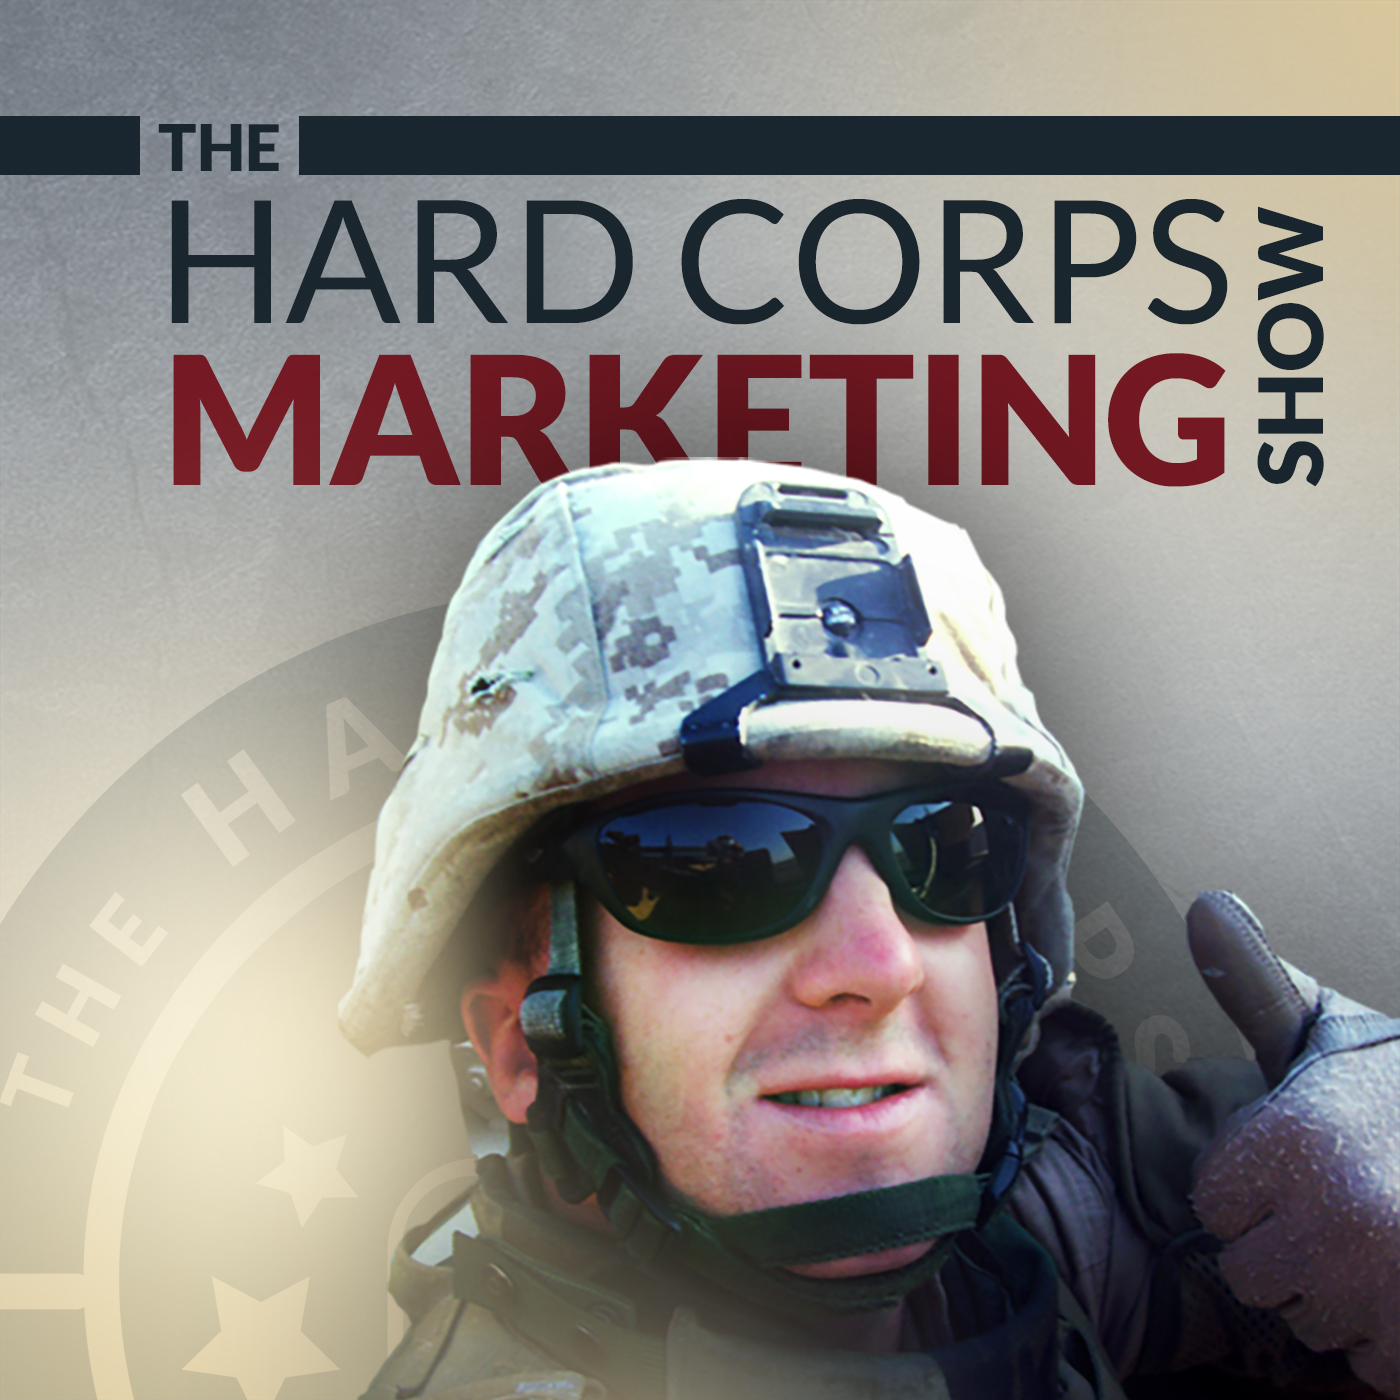 The Power of Storytelling Changes Everything - Tom Gerace - Hard Corps Marketing Show #021